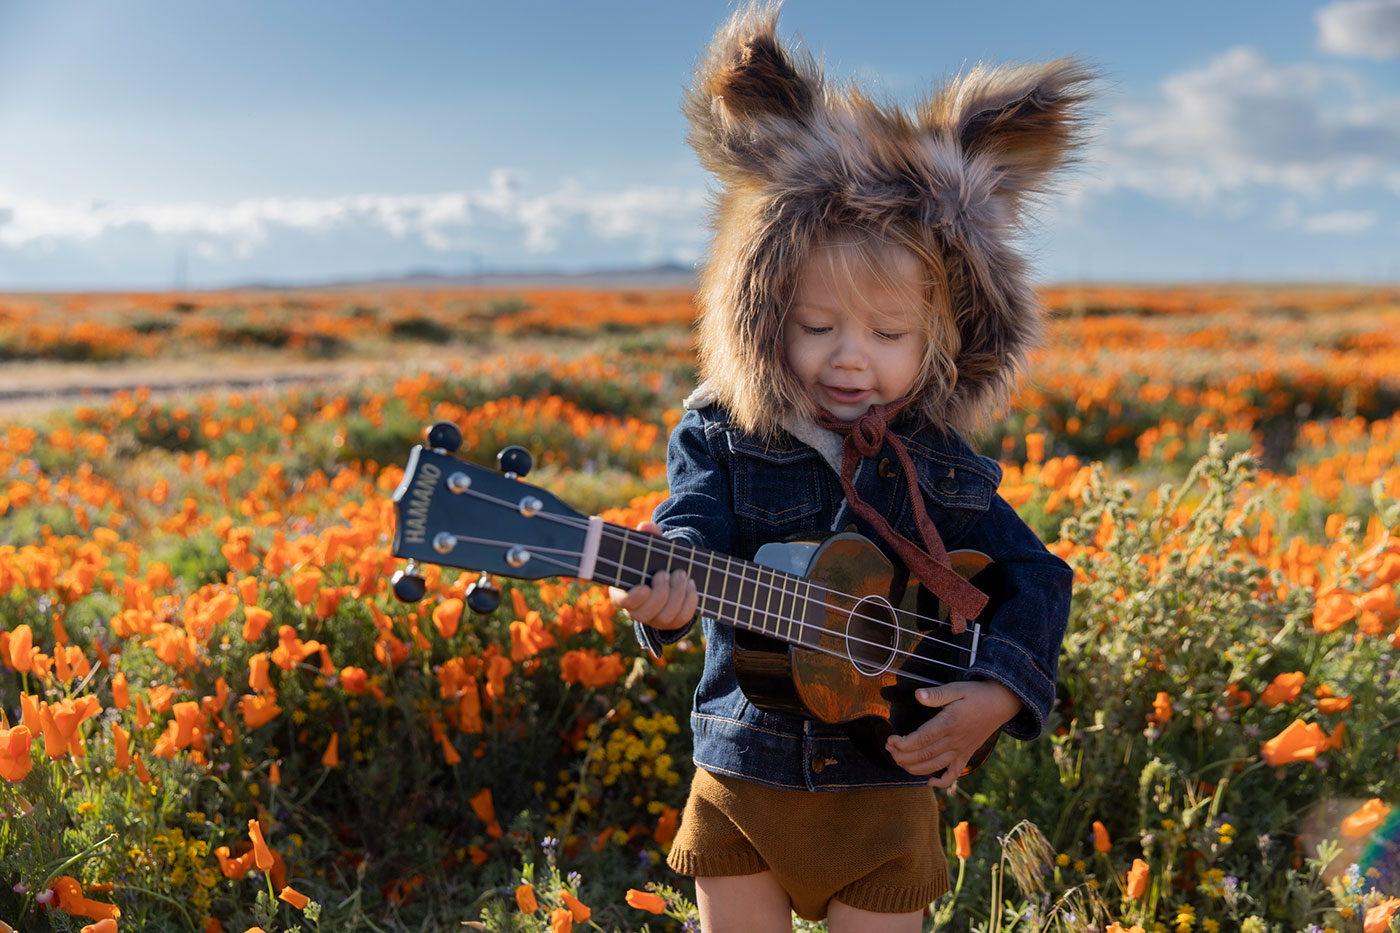 mateo-playing-guitar-in-flowers.jpg